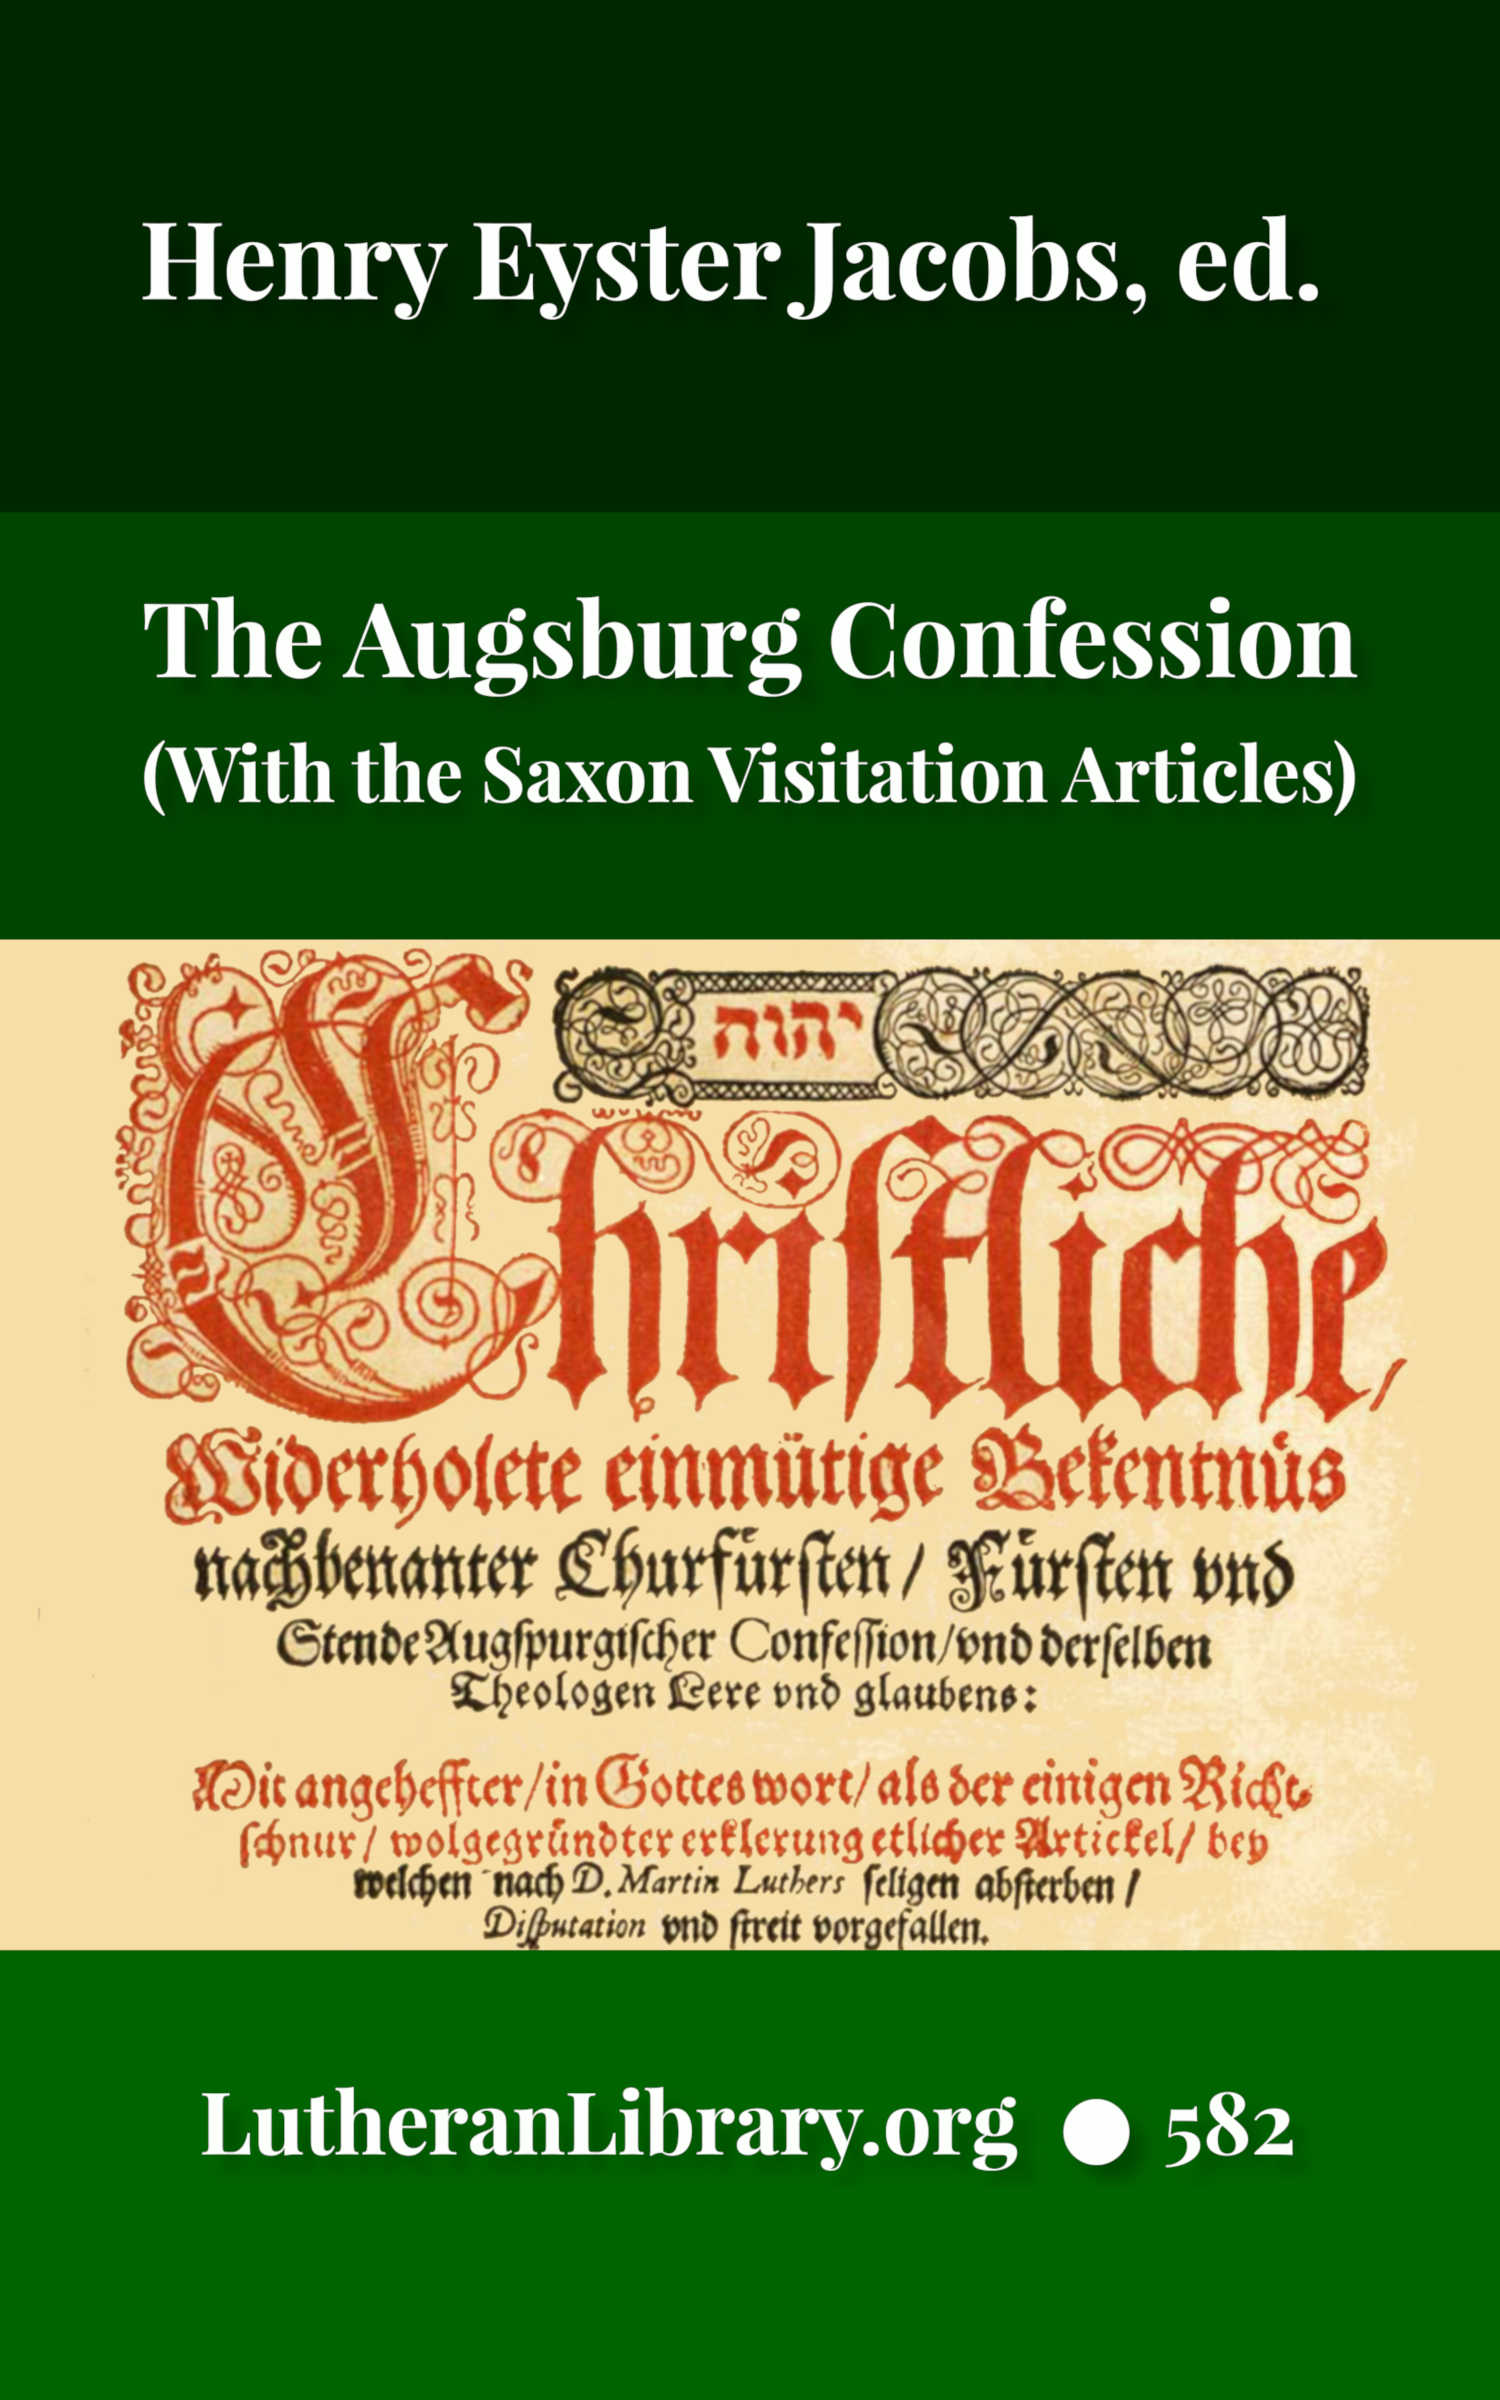 The Augsburg Confession With The Saxon Visitation Articles by Martin Luther